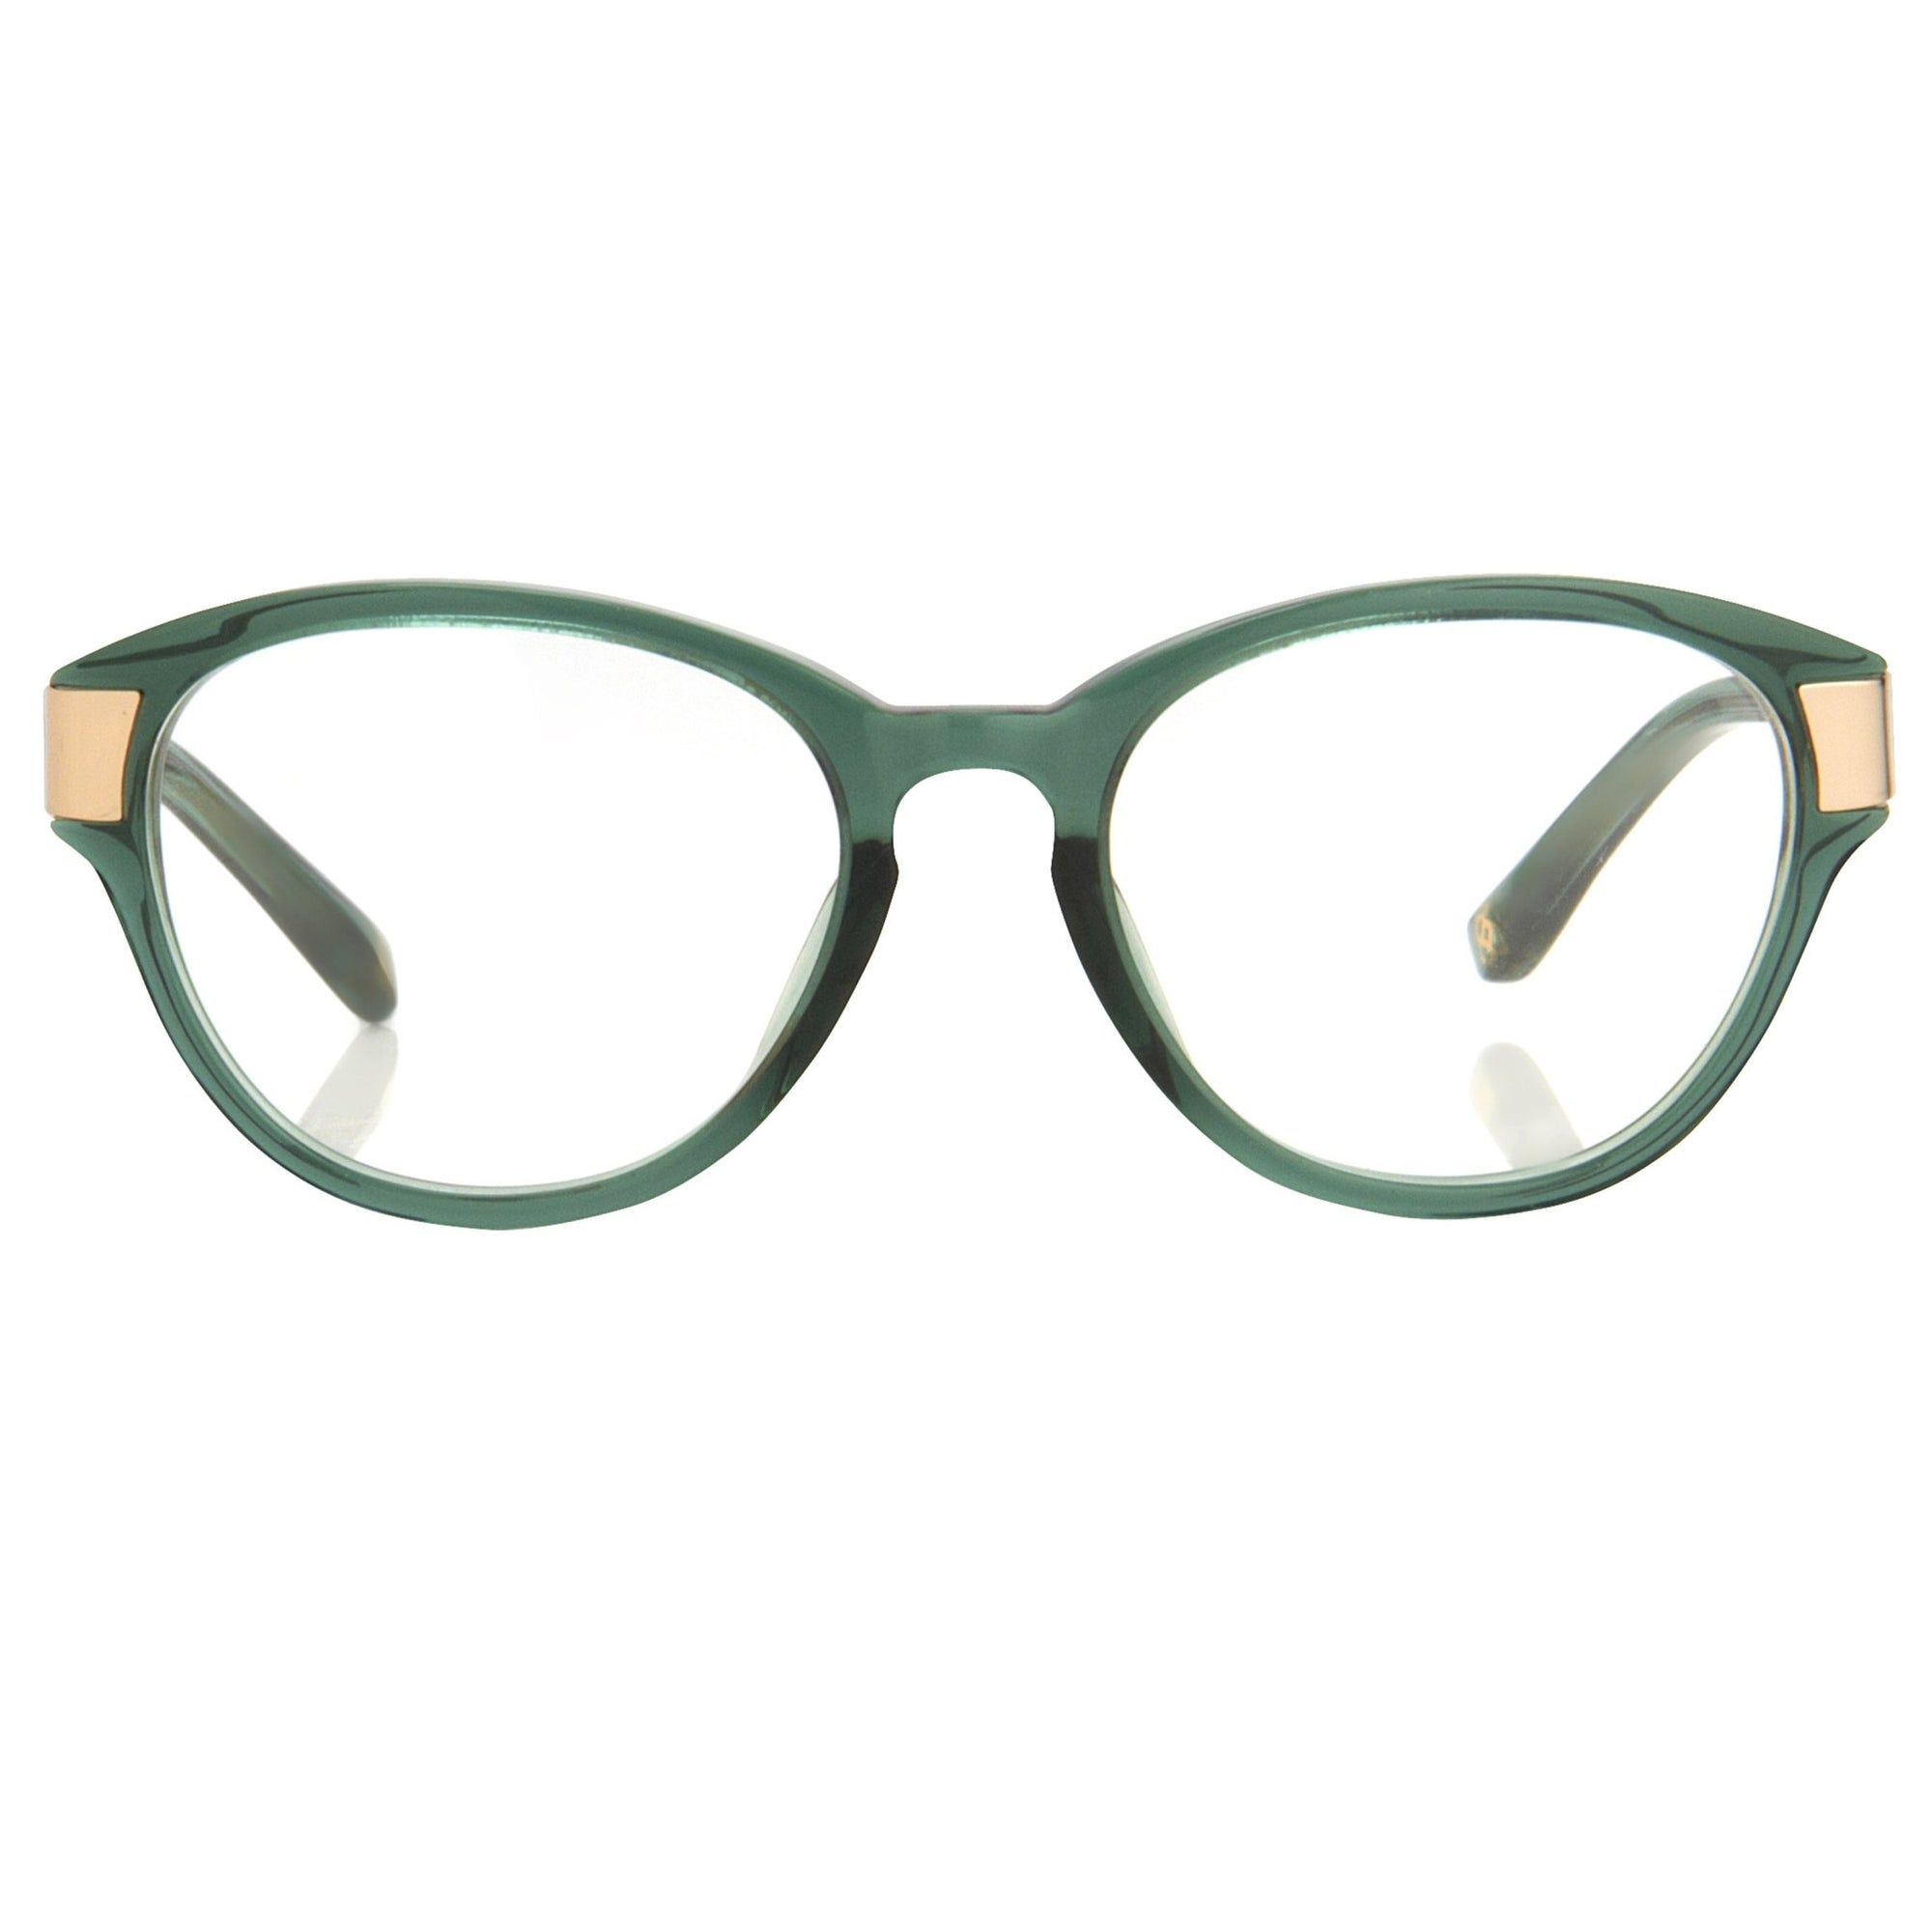 Oscar De La Renta Women Eyeglasses Oval Green White Mother of Pearl and Clear Lenses - ODLR37C4OPT - Watches & Crystals